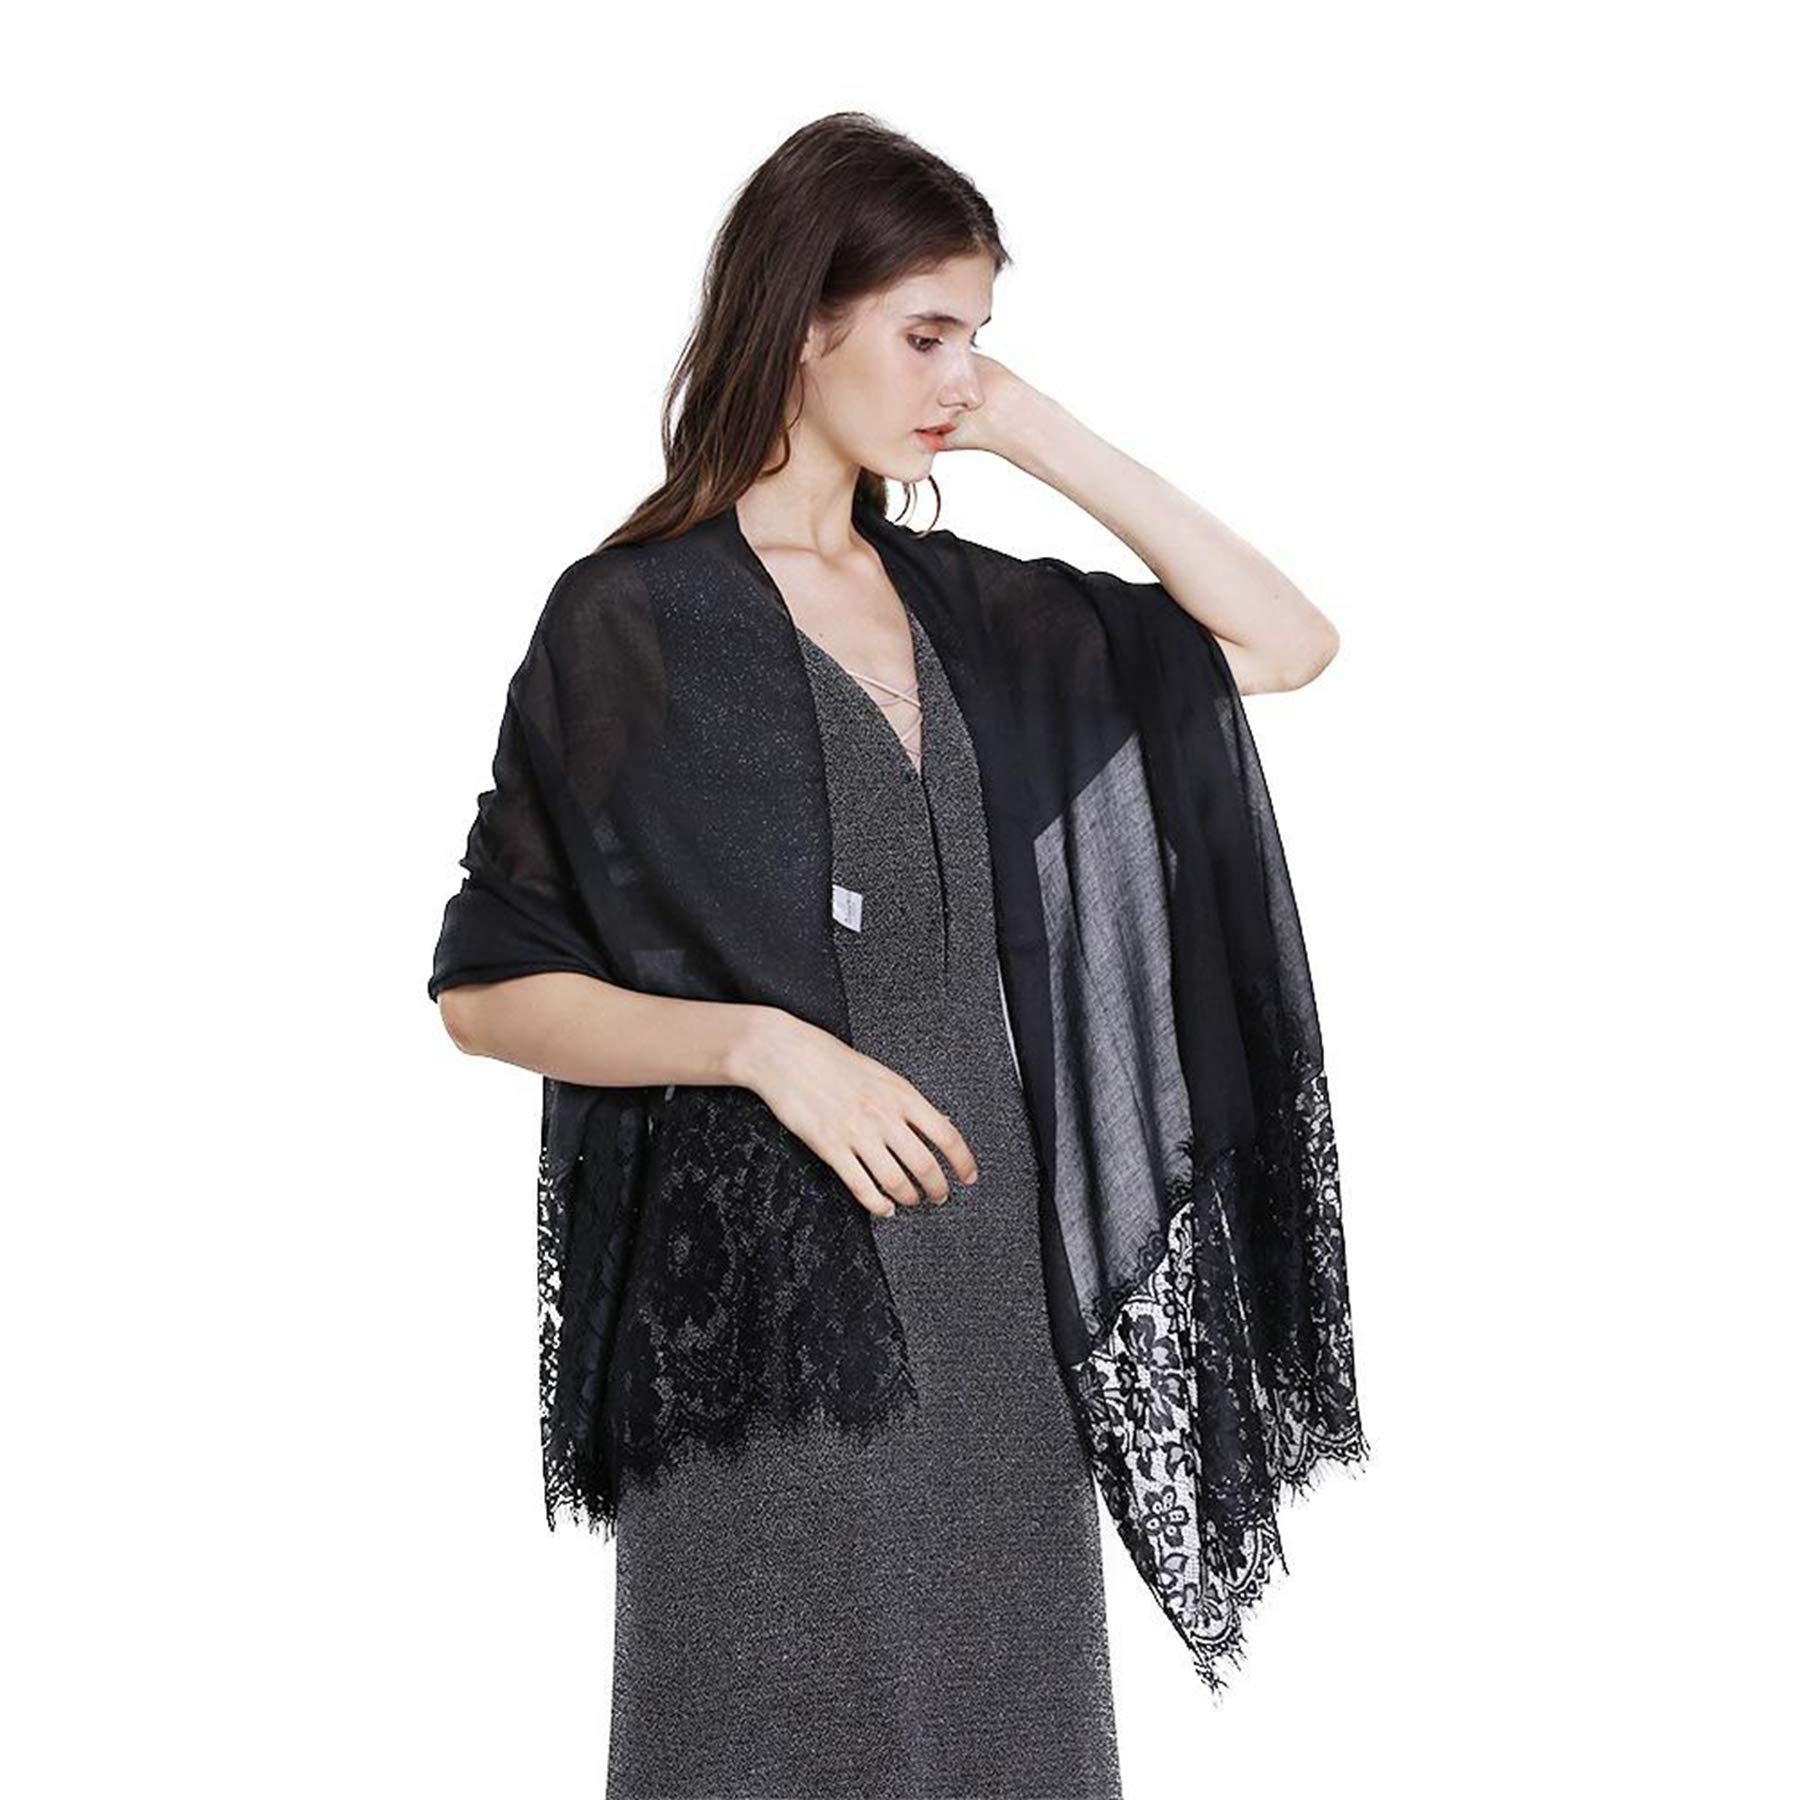 Women Fashion Scarf Wrap Shawl,RiscaWin Autumn Soft Lightweight Lace Scarves Wrap Warm Scarf(Black) by RiscaWin (Image #6)